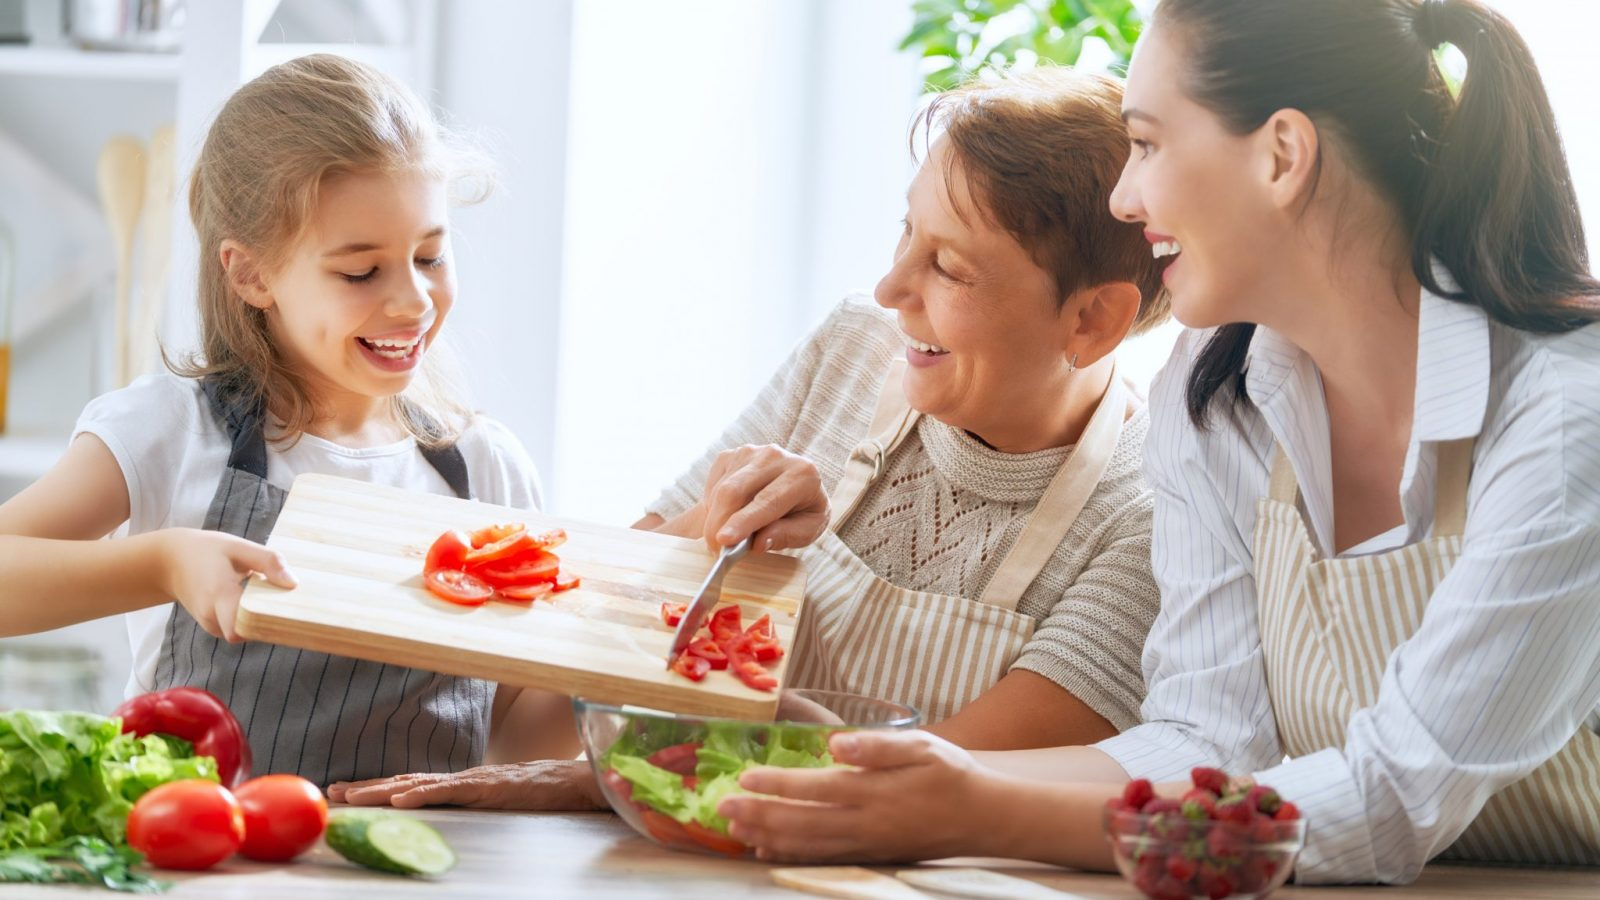 photo of grandmother, mother, and daughter preparing healthy foods together